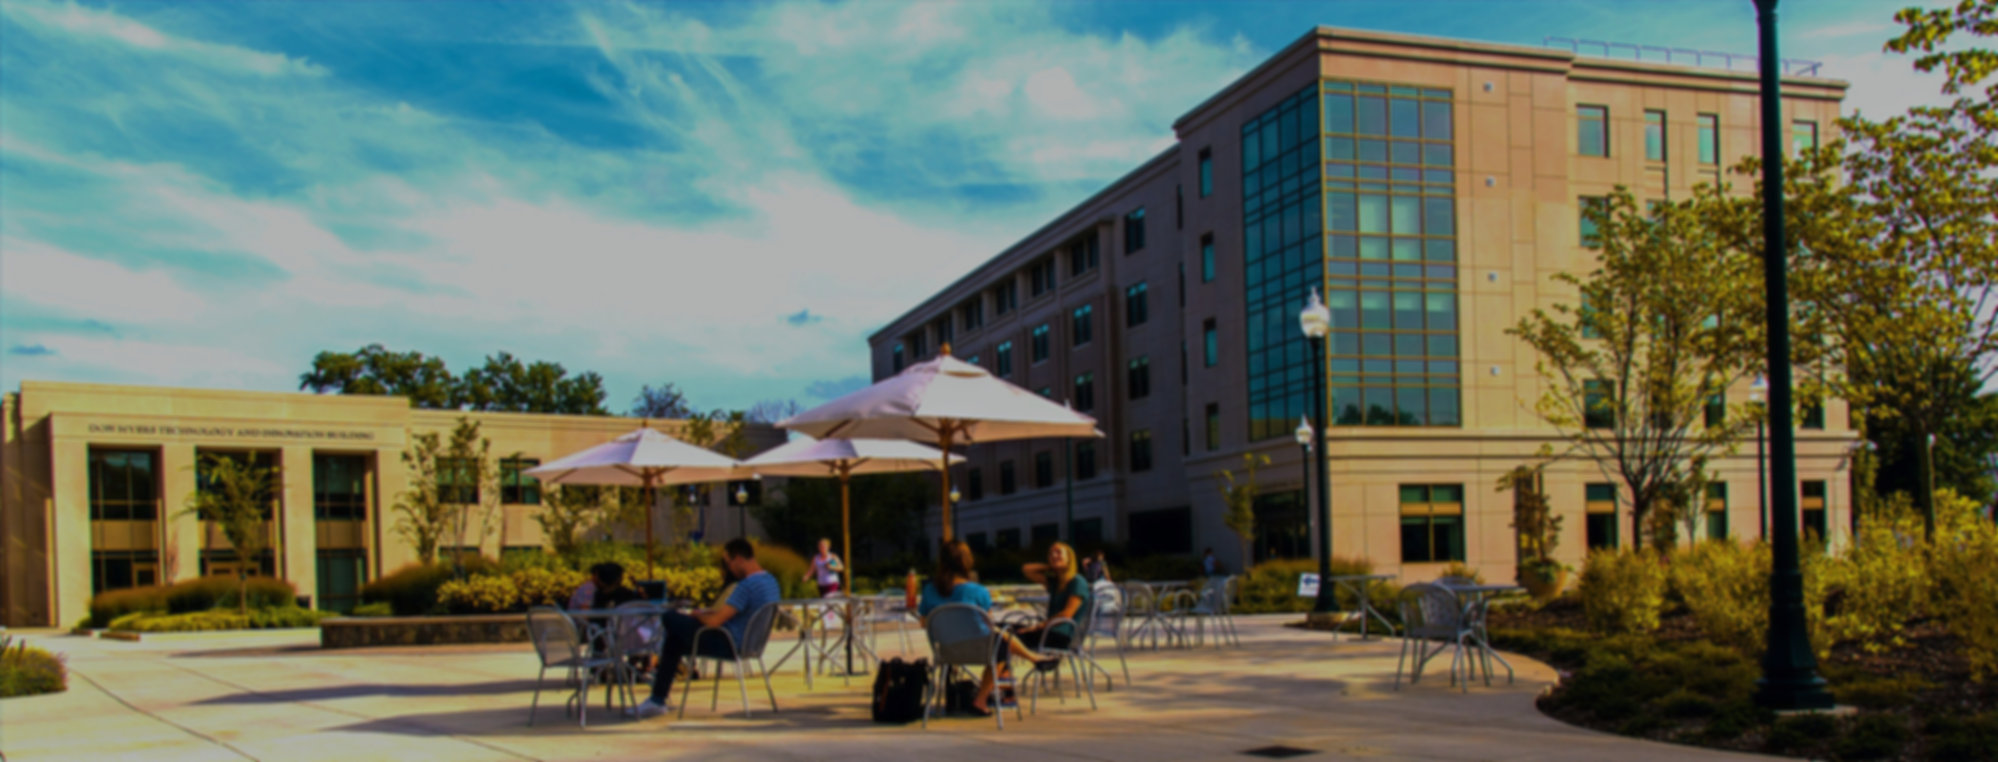 East-Campus-Commons-Outdoor-Seating_edit